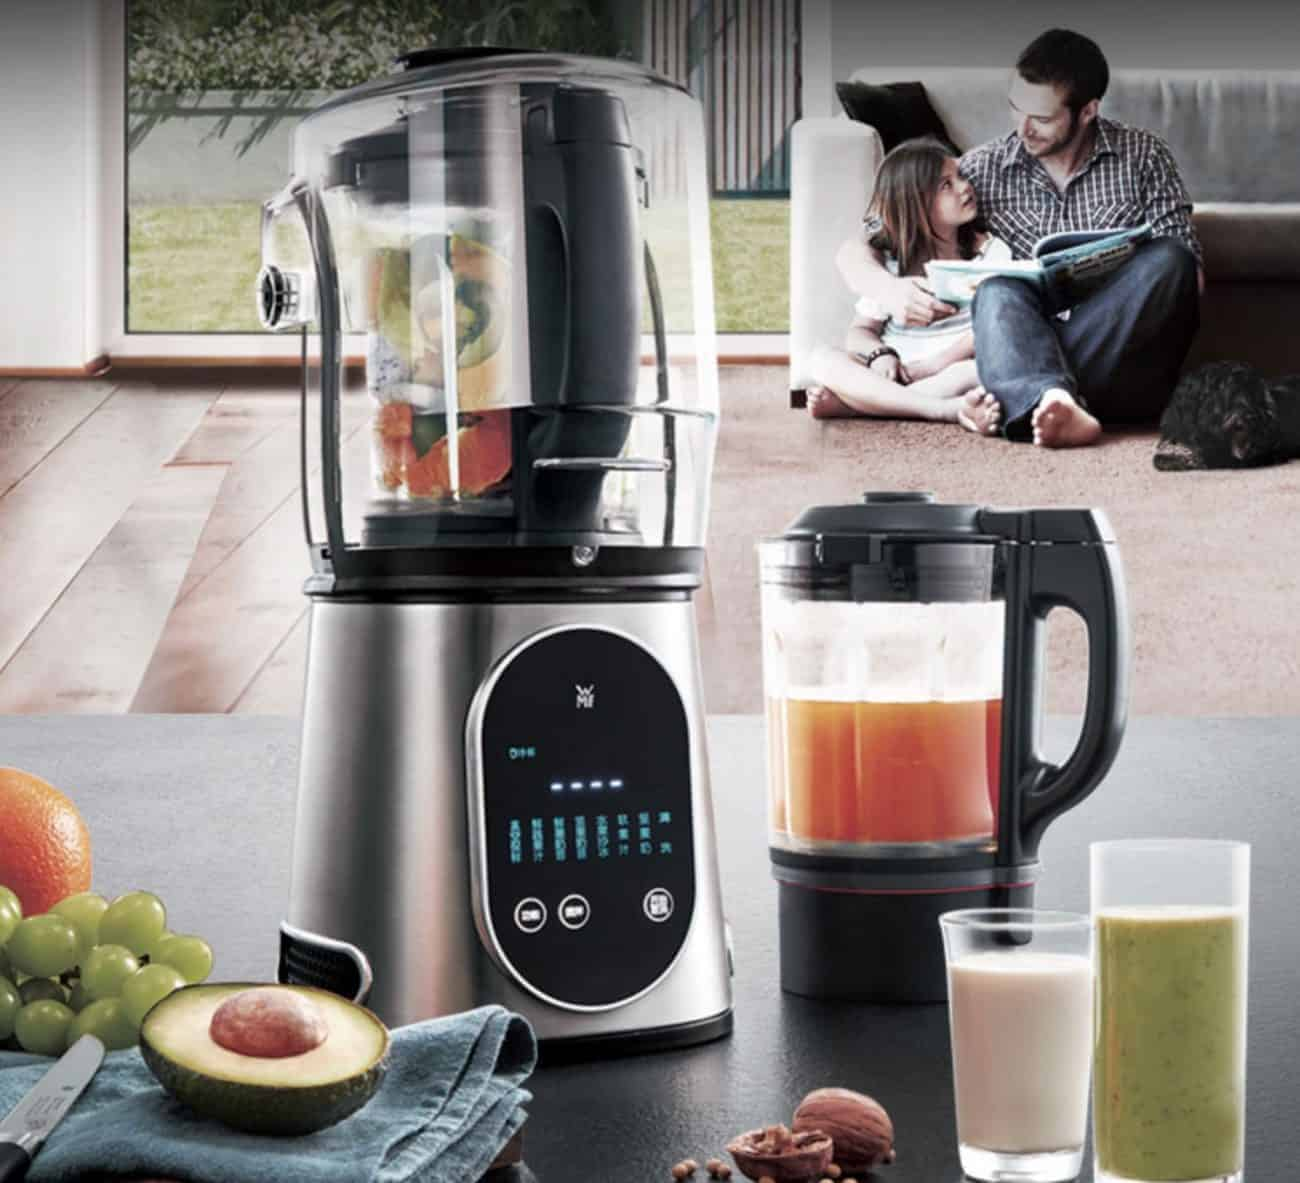 How to Choose the Best Food Processors